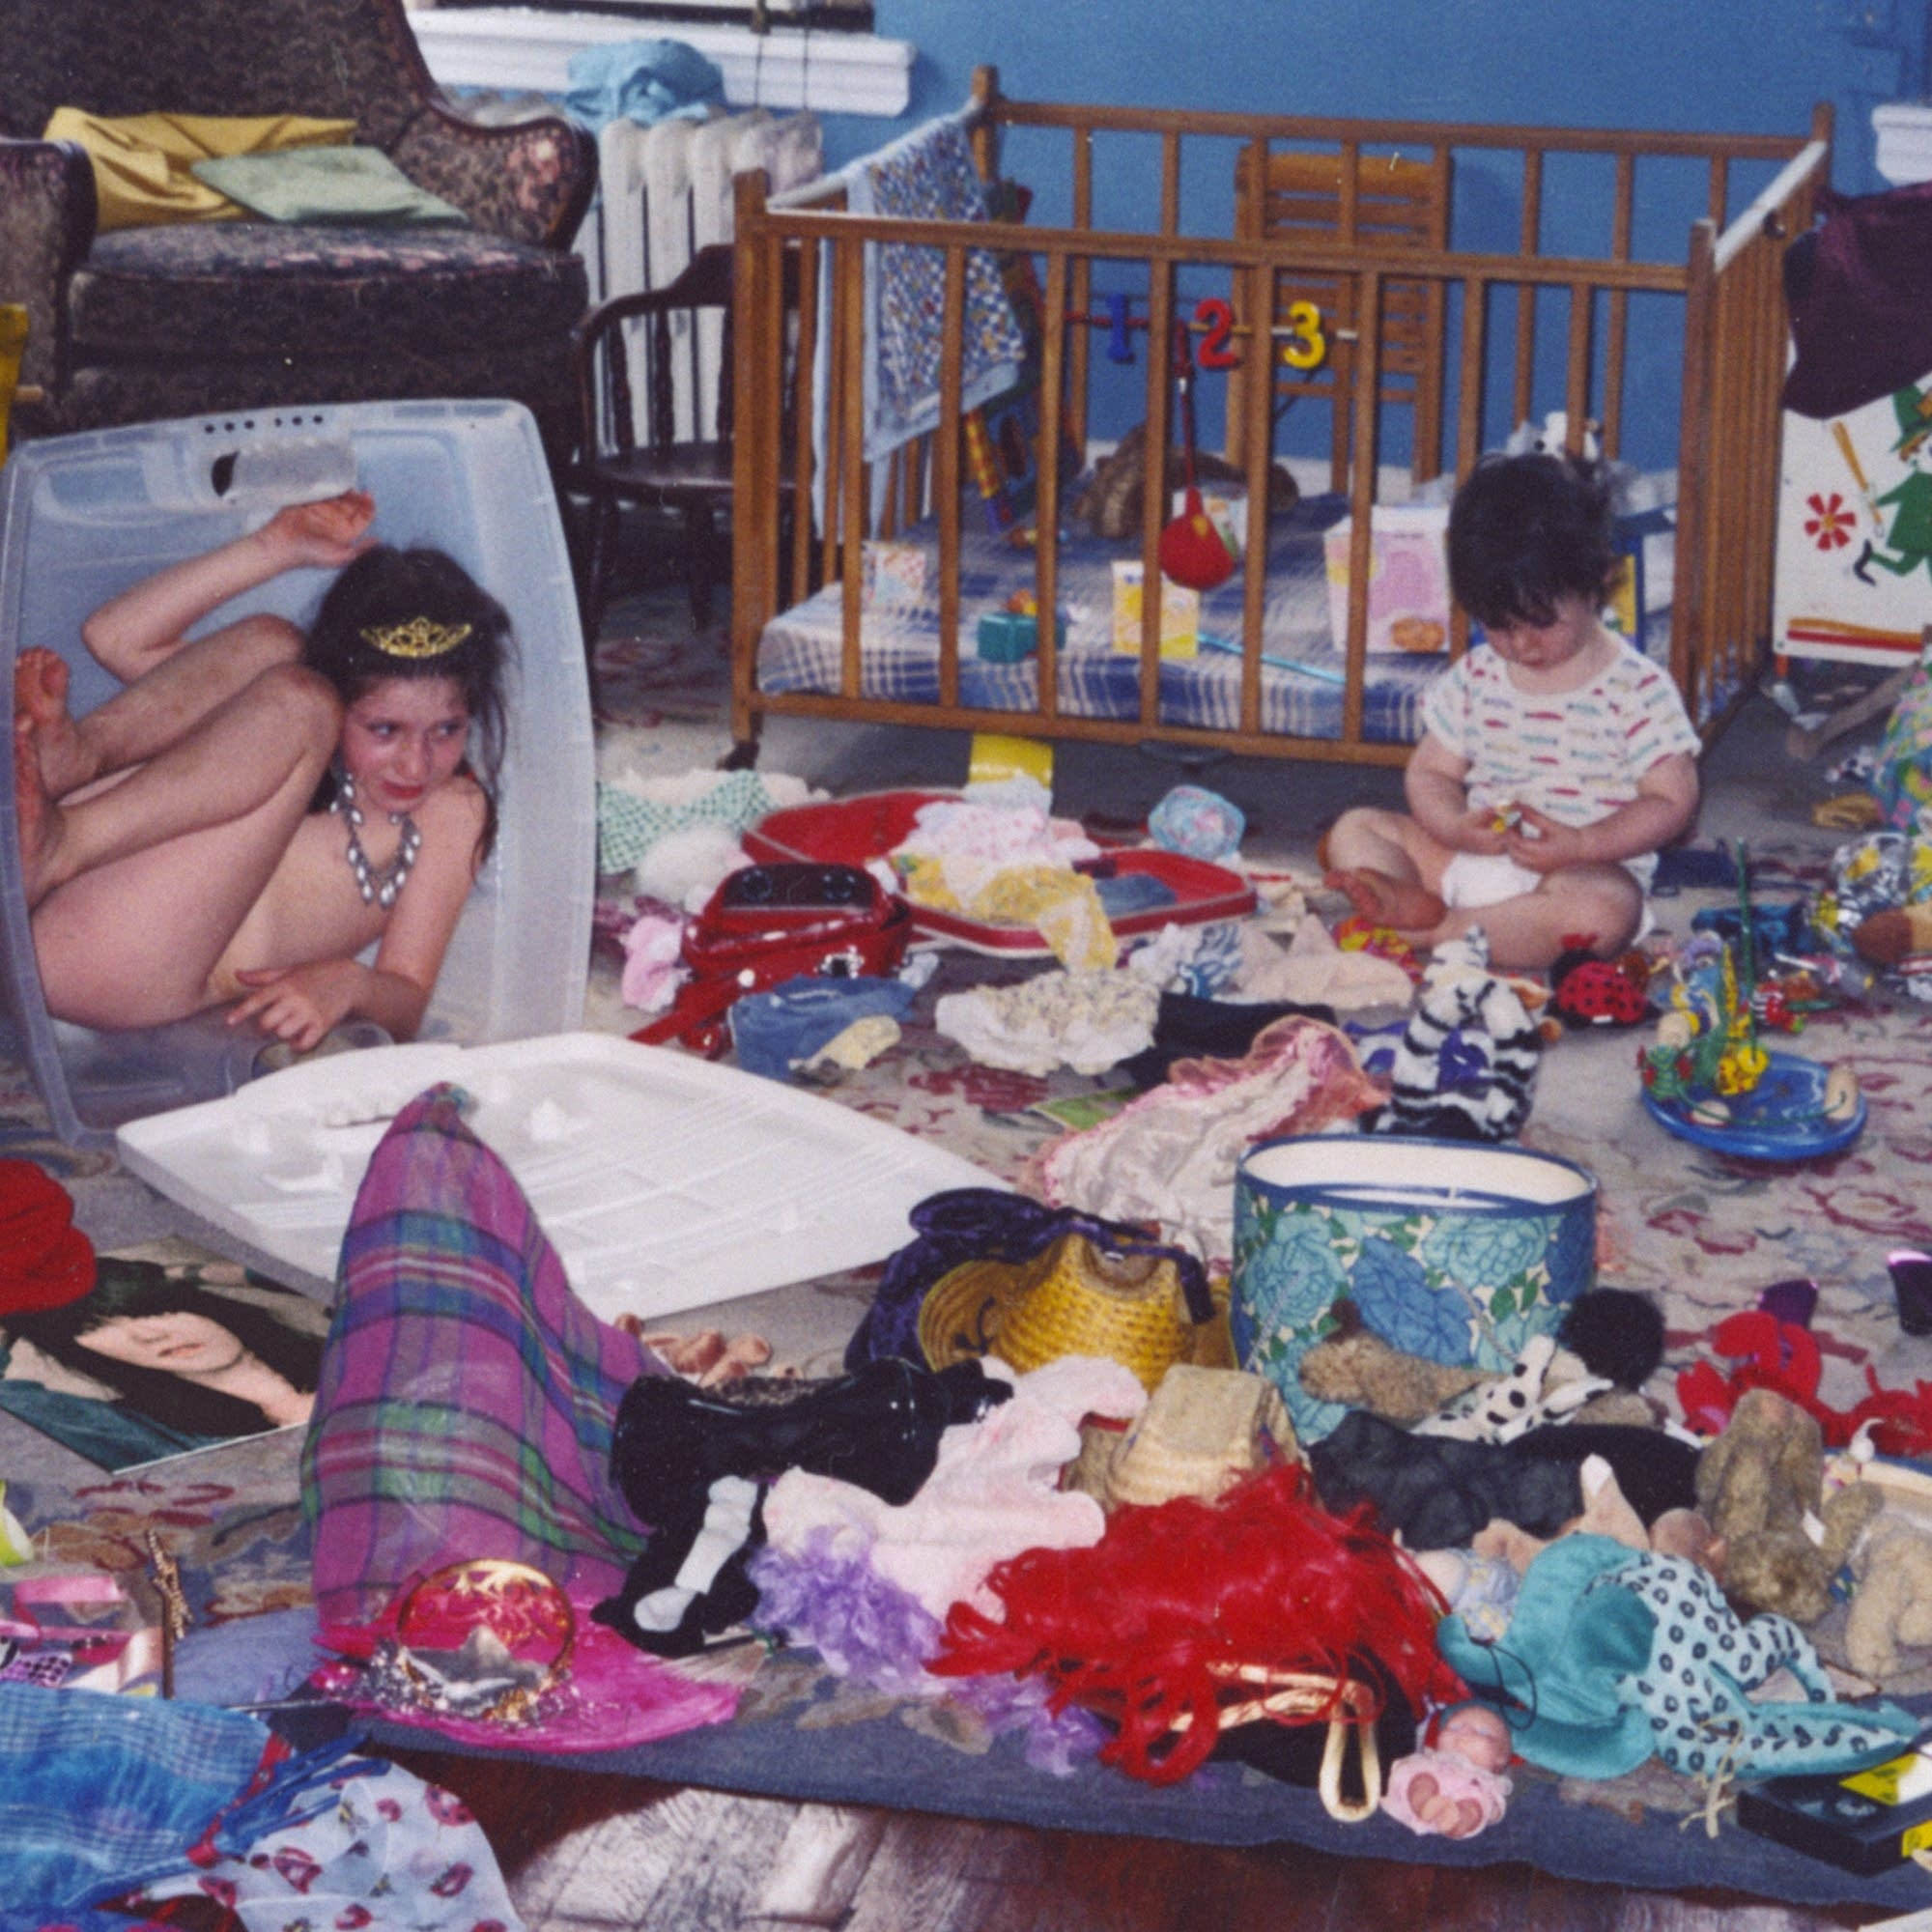 Remind Me Tomorrow, the new album from Sharon Van Etten is out now.